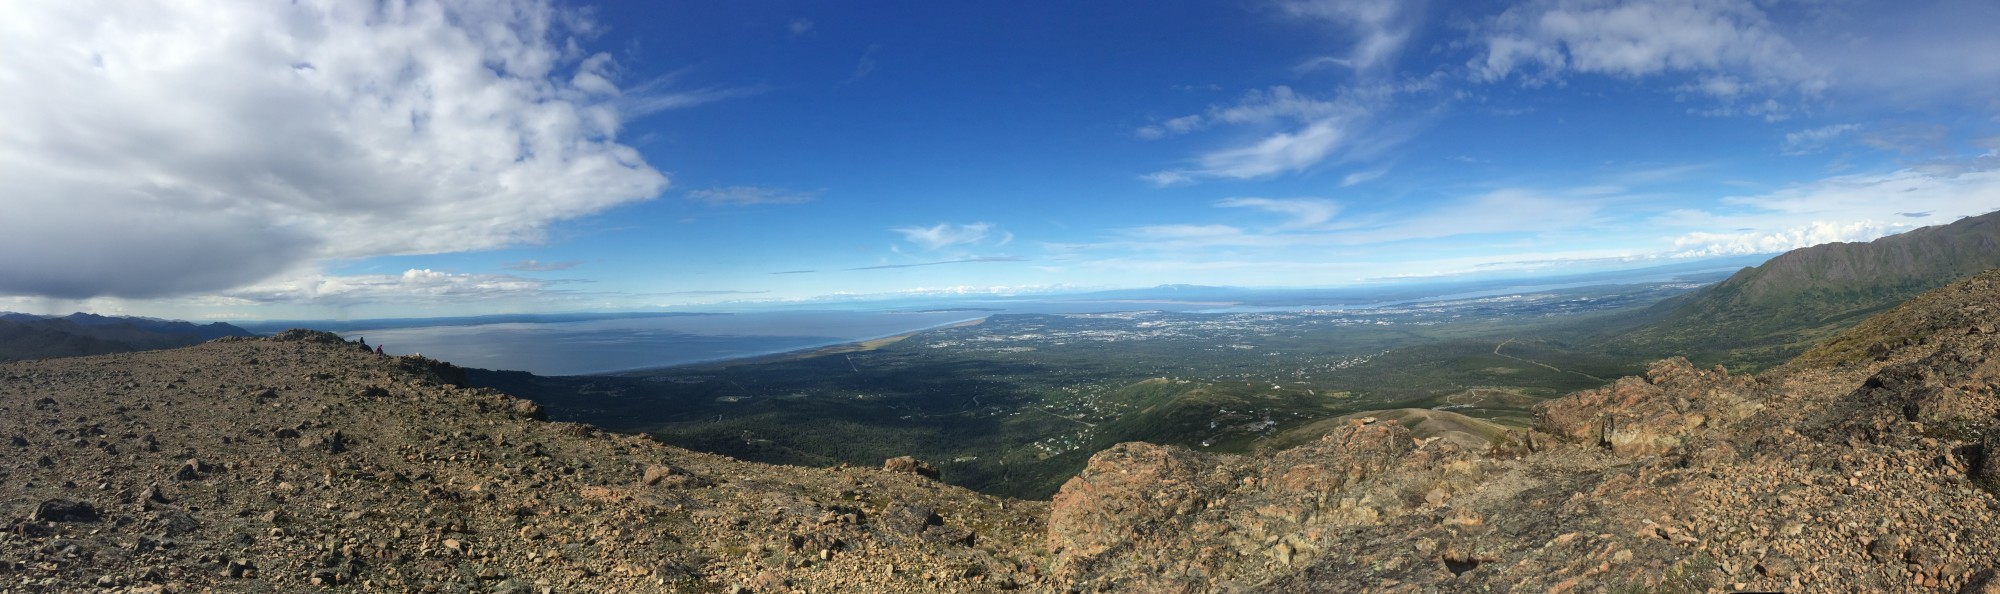 Panorama view from Flattop Mountain